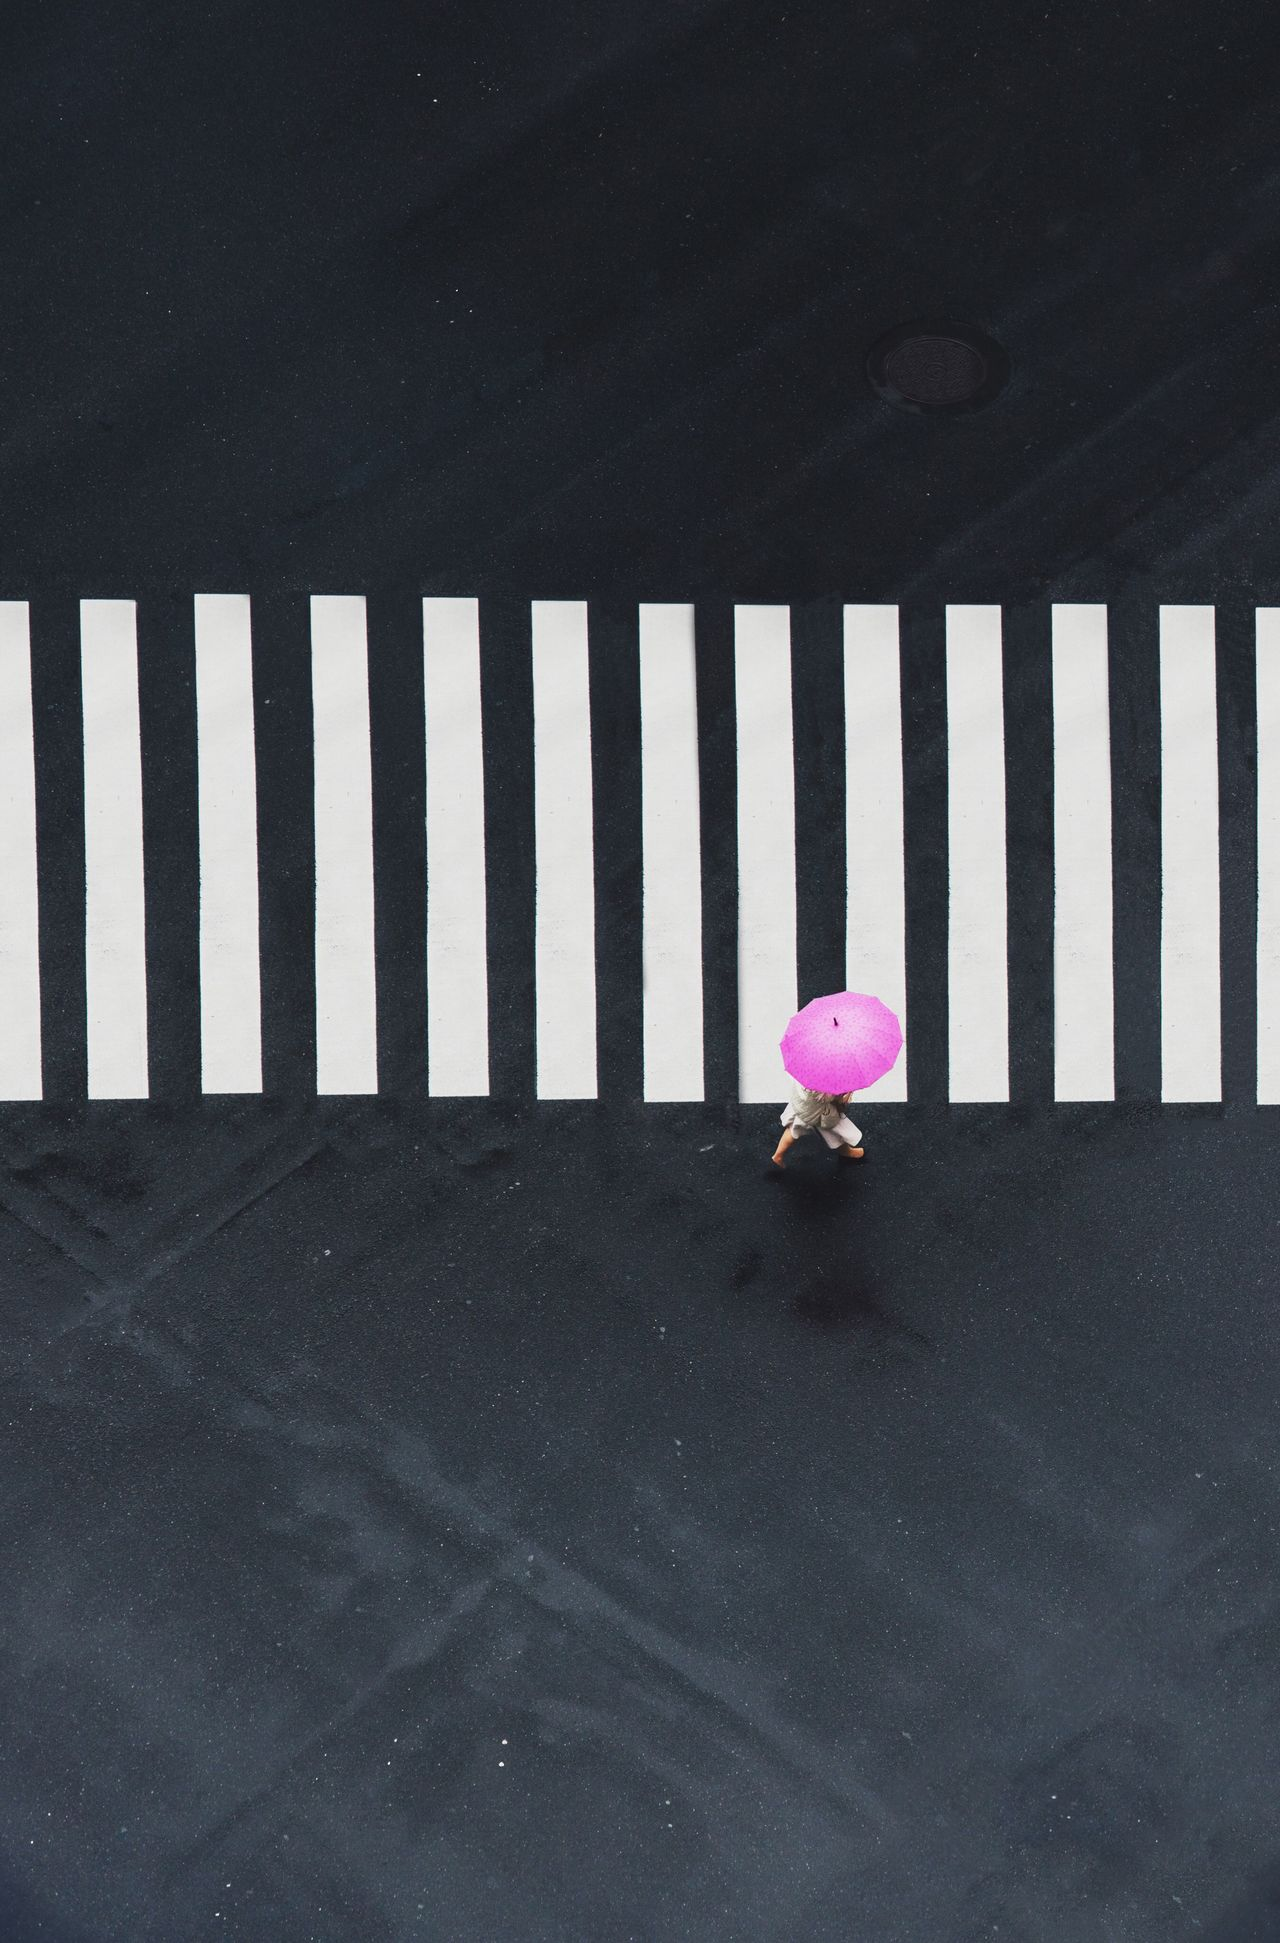 Street Pink Color Streetphotography Tokyo Crossing City Life Minimalism Minimal Japan Minimalobsession Minimalist Zebra Crossing City Street High Angle View Cityscape Tinypeople